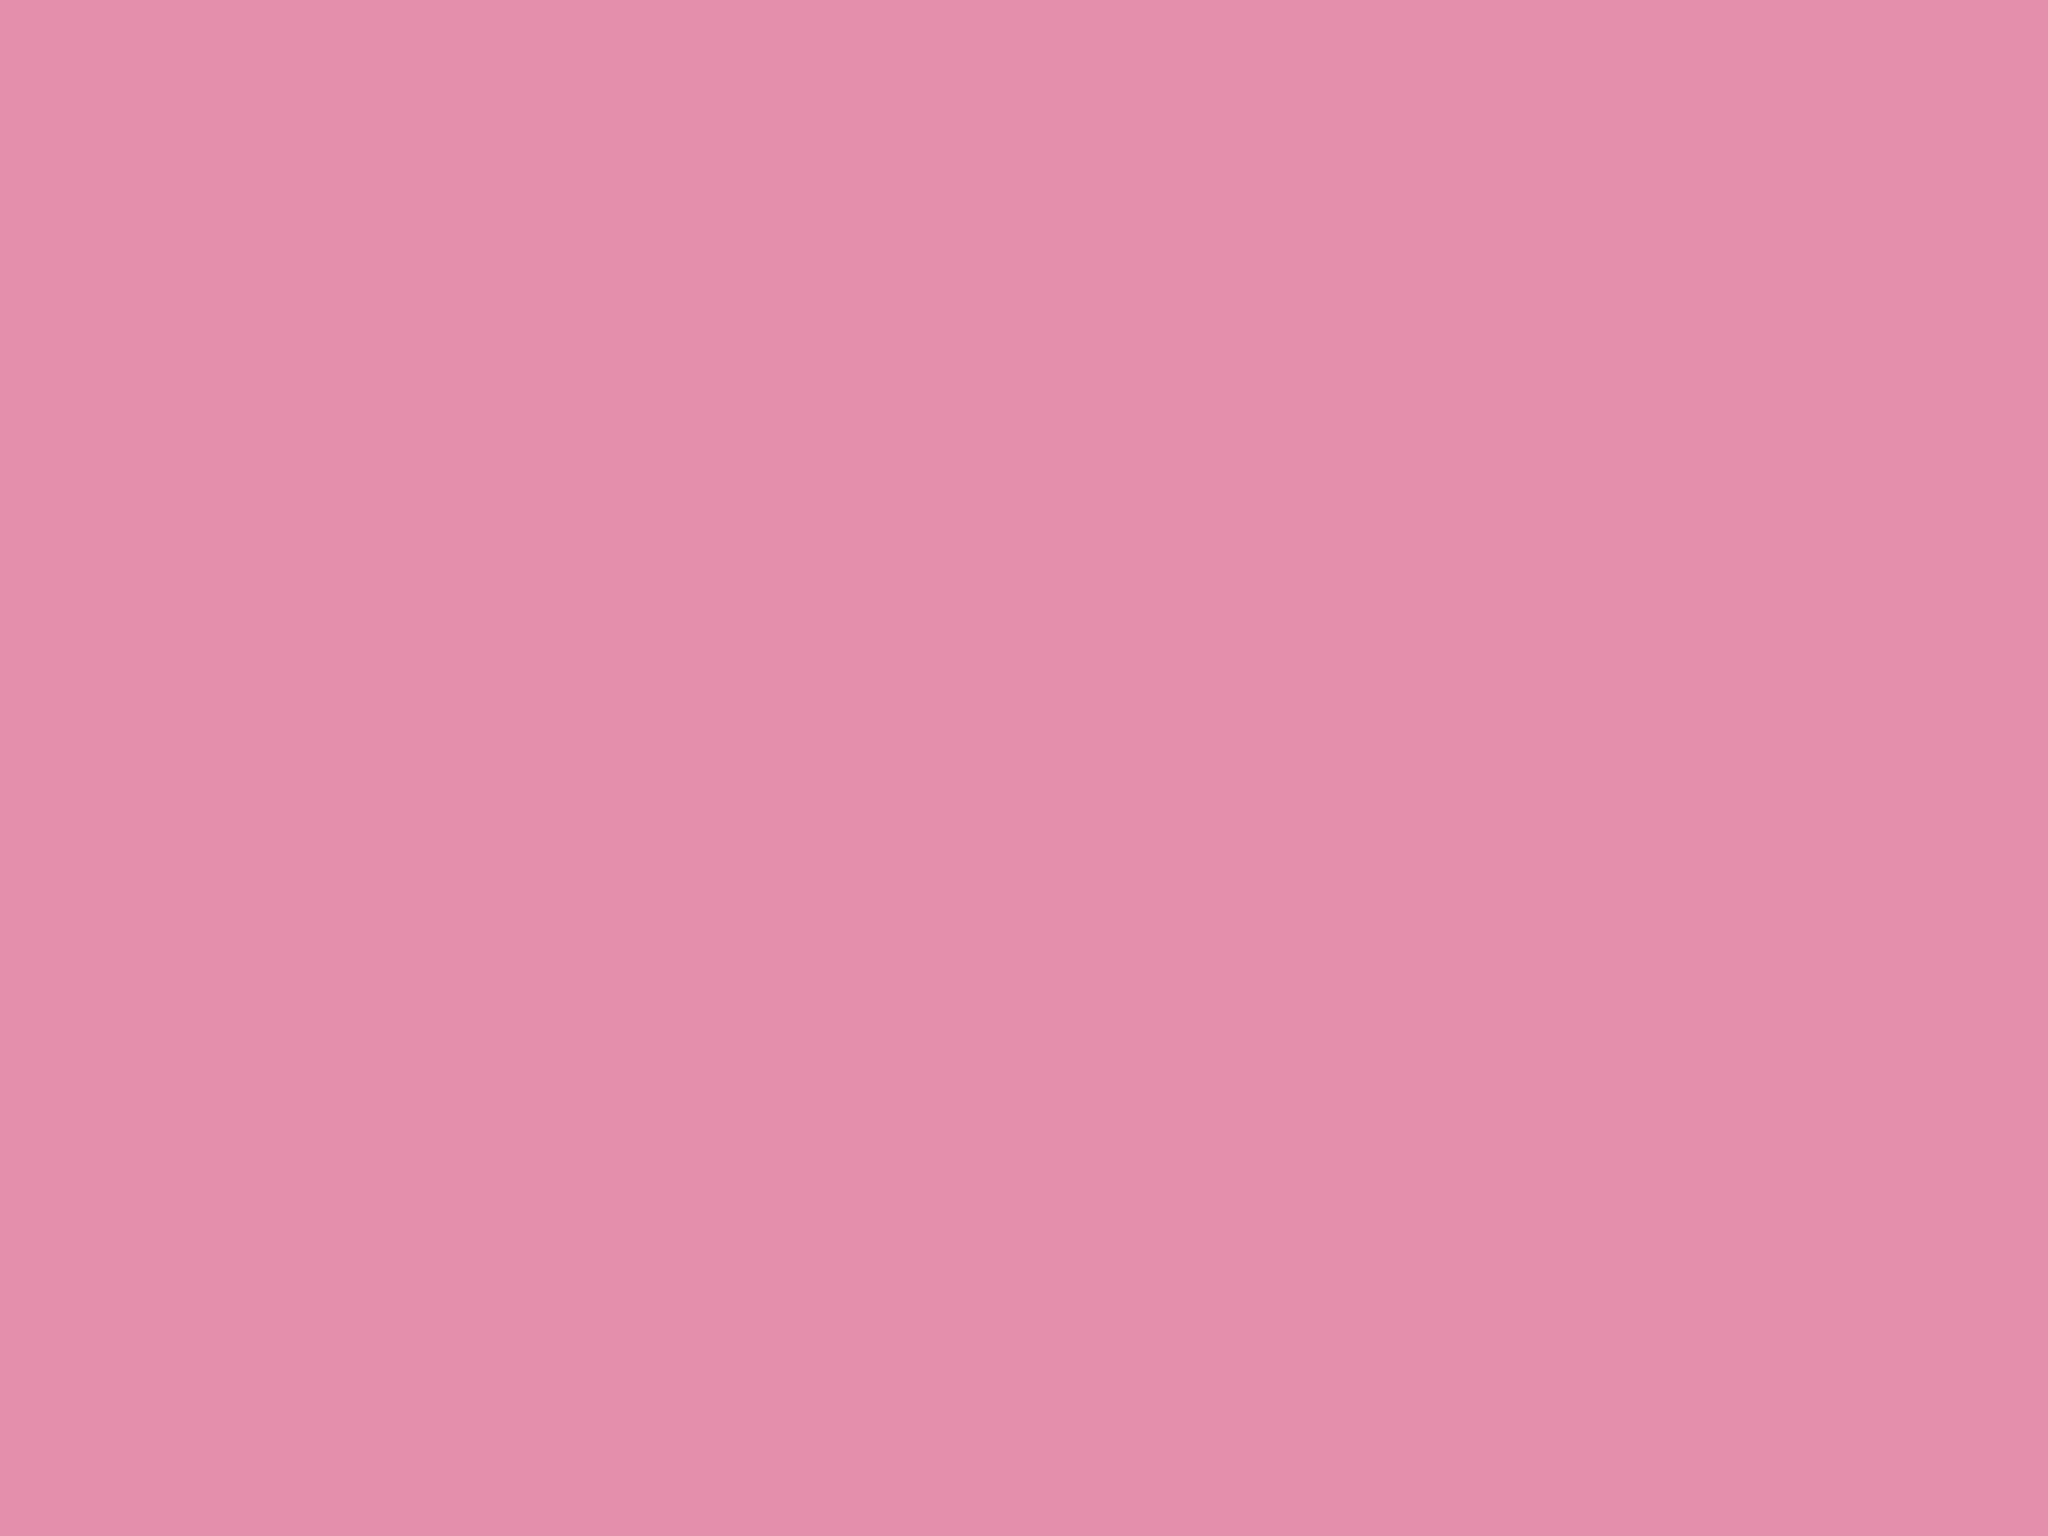 2048x1536 Light Thulian Pink Solid Color Background